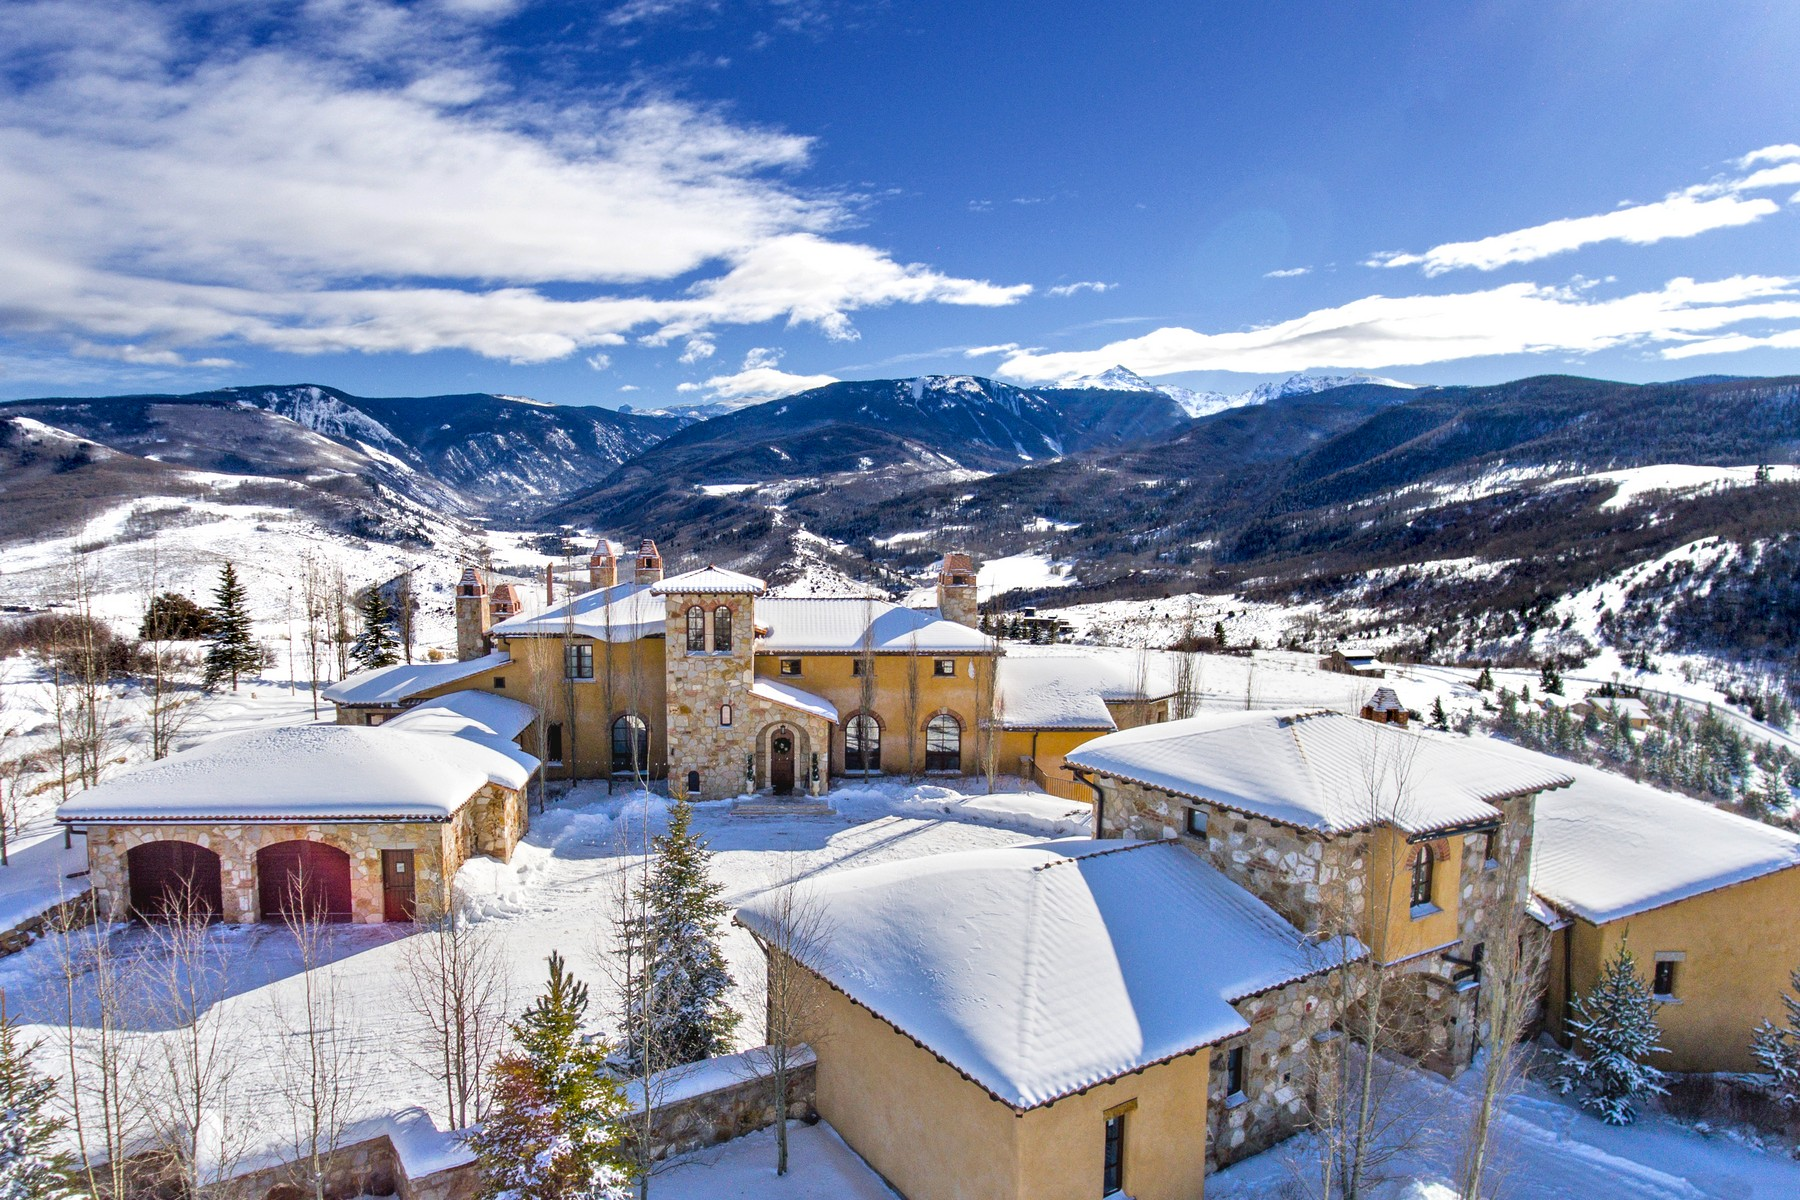 Single Family Home for Sale at Luxury Vail Valley Estate 1548 Via La Favorita Edwards, Colorado, 81632 United States